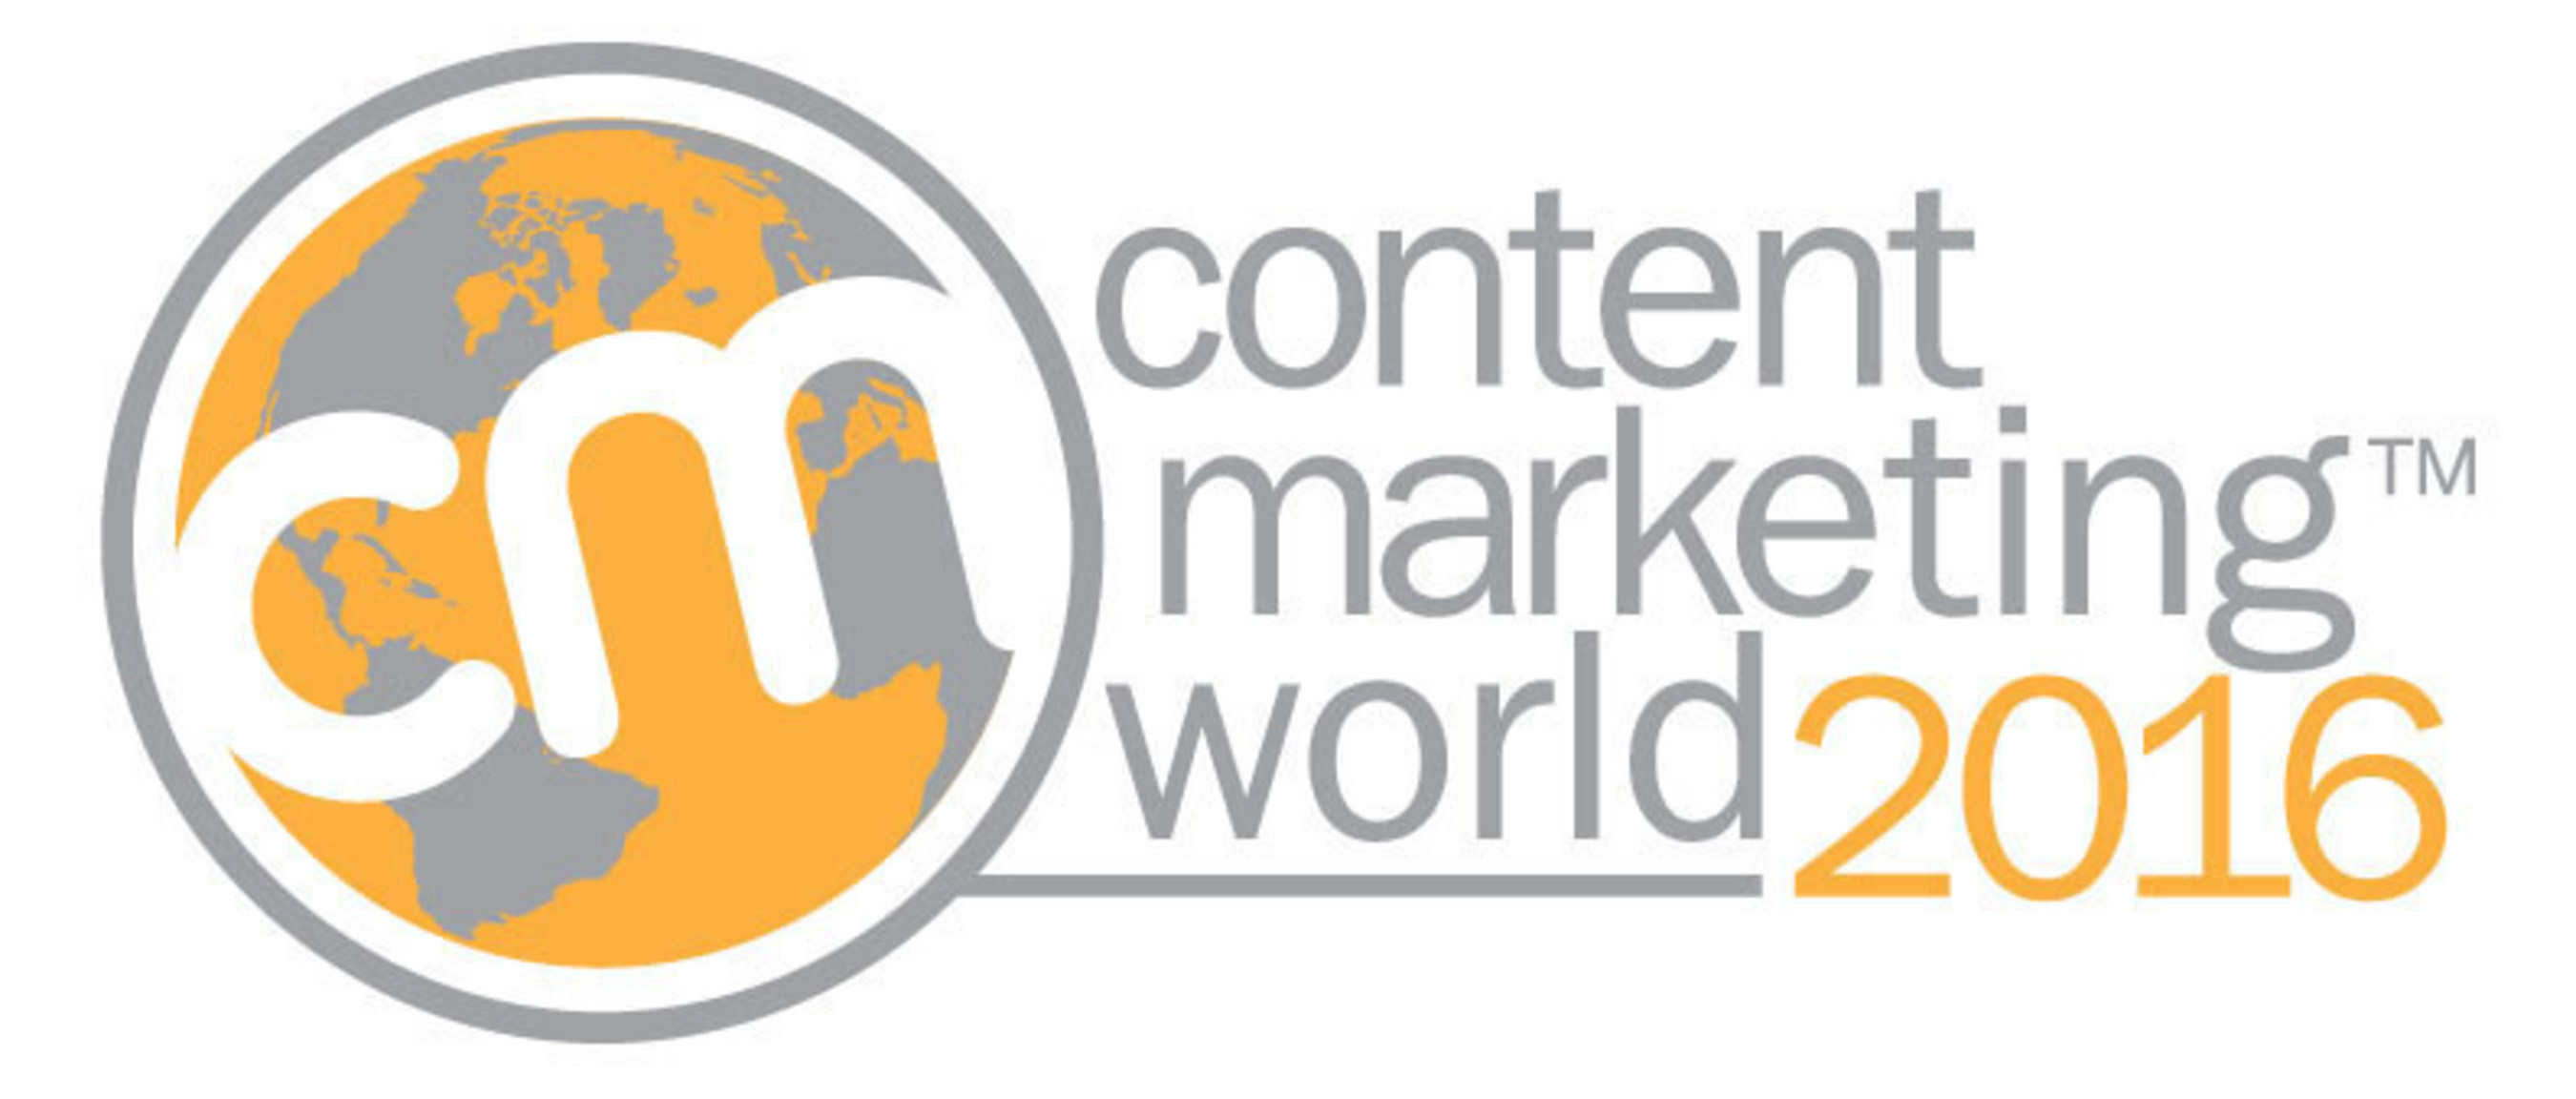 Content Marketing World 2016 Call for Speakers Now Open